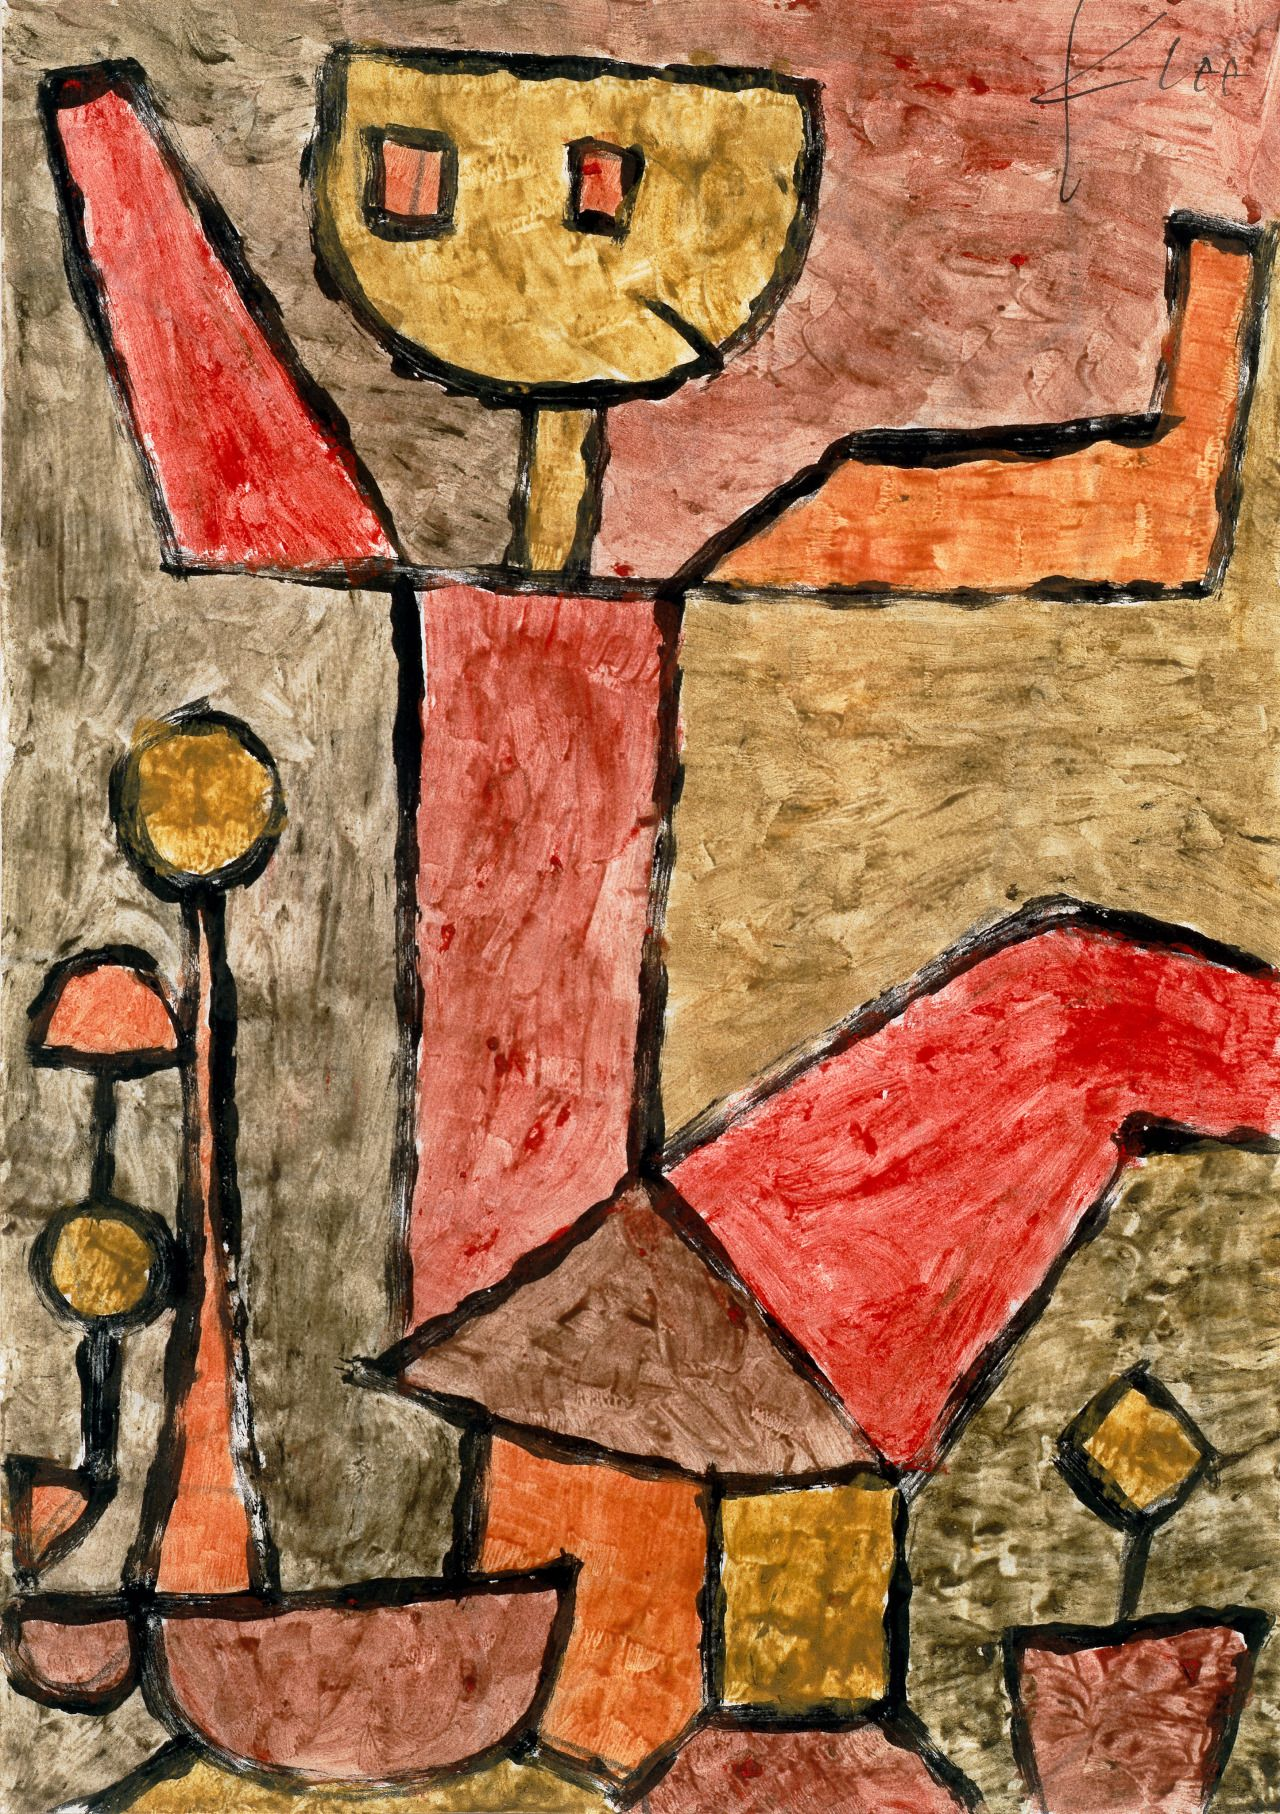 Paul Klee 1879 1940 Boy With Toys Coloured Paste On Paper 29 2cm H X 20 6cm W Guggenheim Museum New York Image C 20 Paul Klee Paintings Art Paul Klee